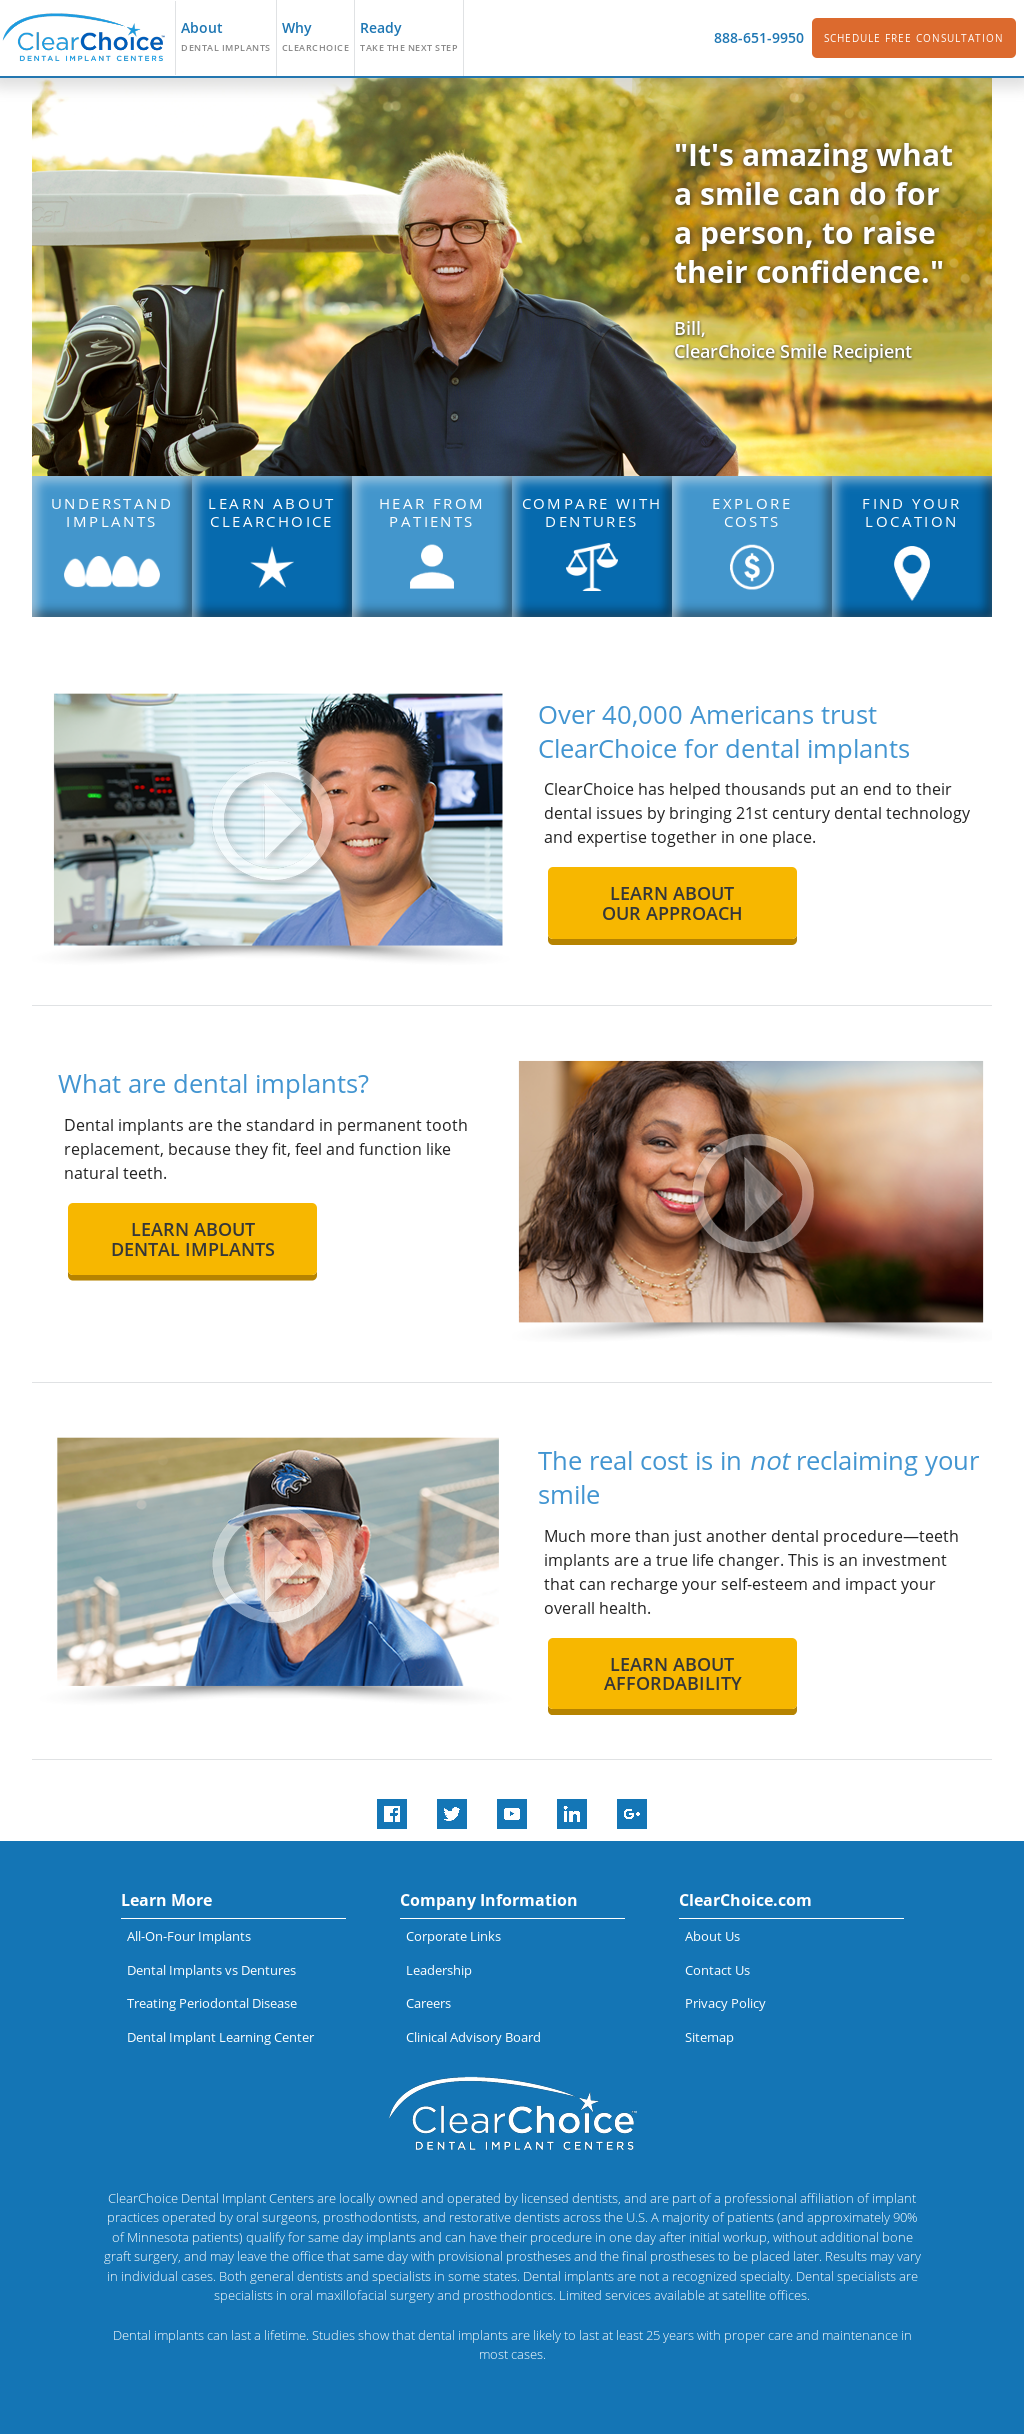 Owler Reports Press Release Clearchoice Clearchoice Dental